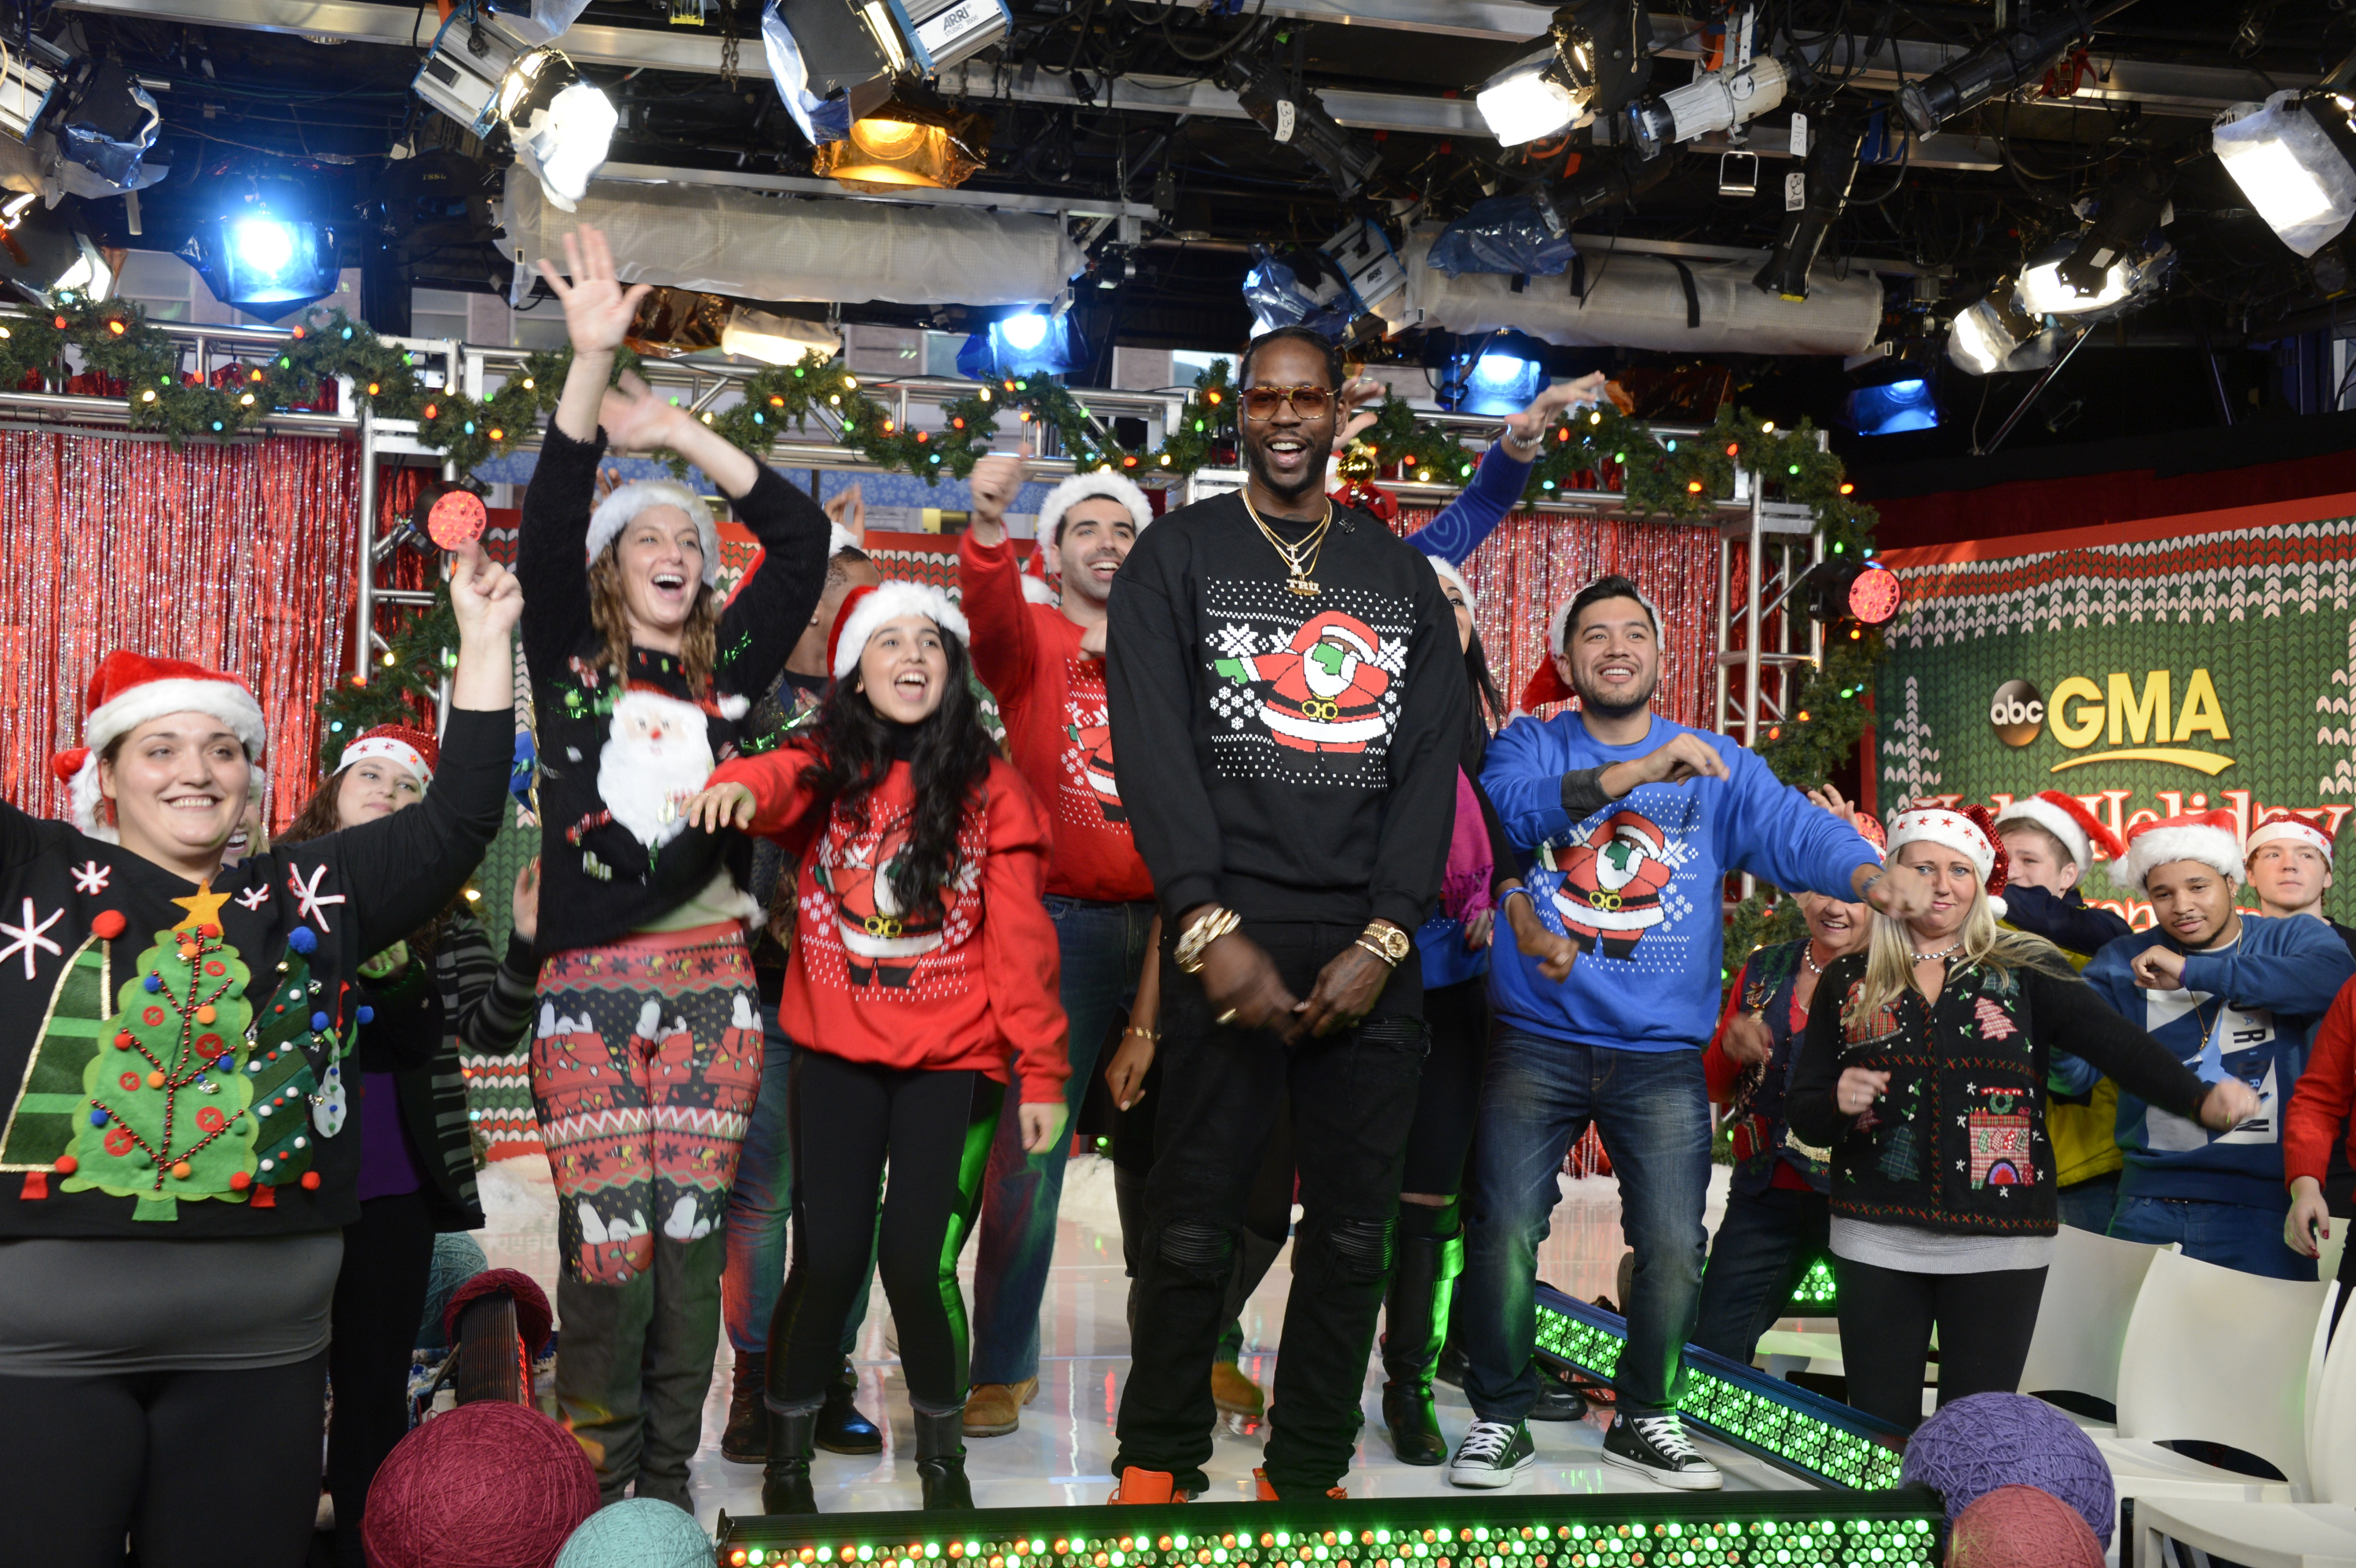 2 Chainz hosts Good Morning America's annual Ugly Sweater Contest.